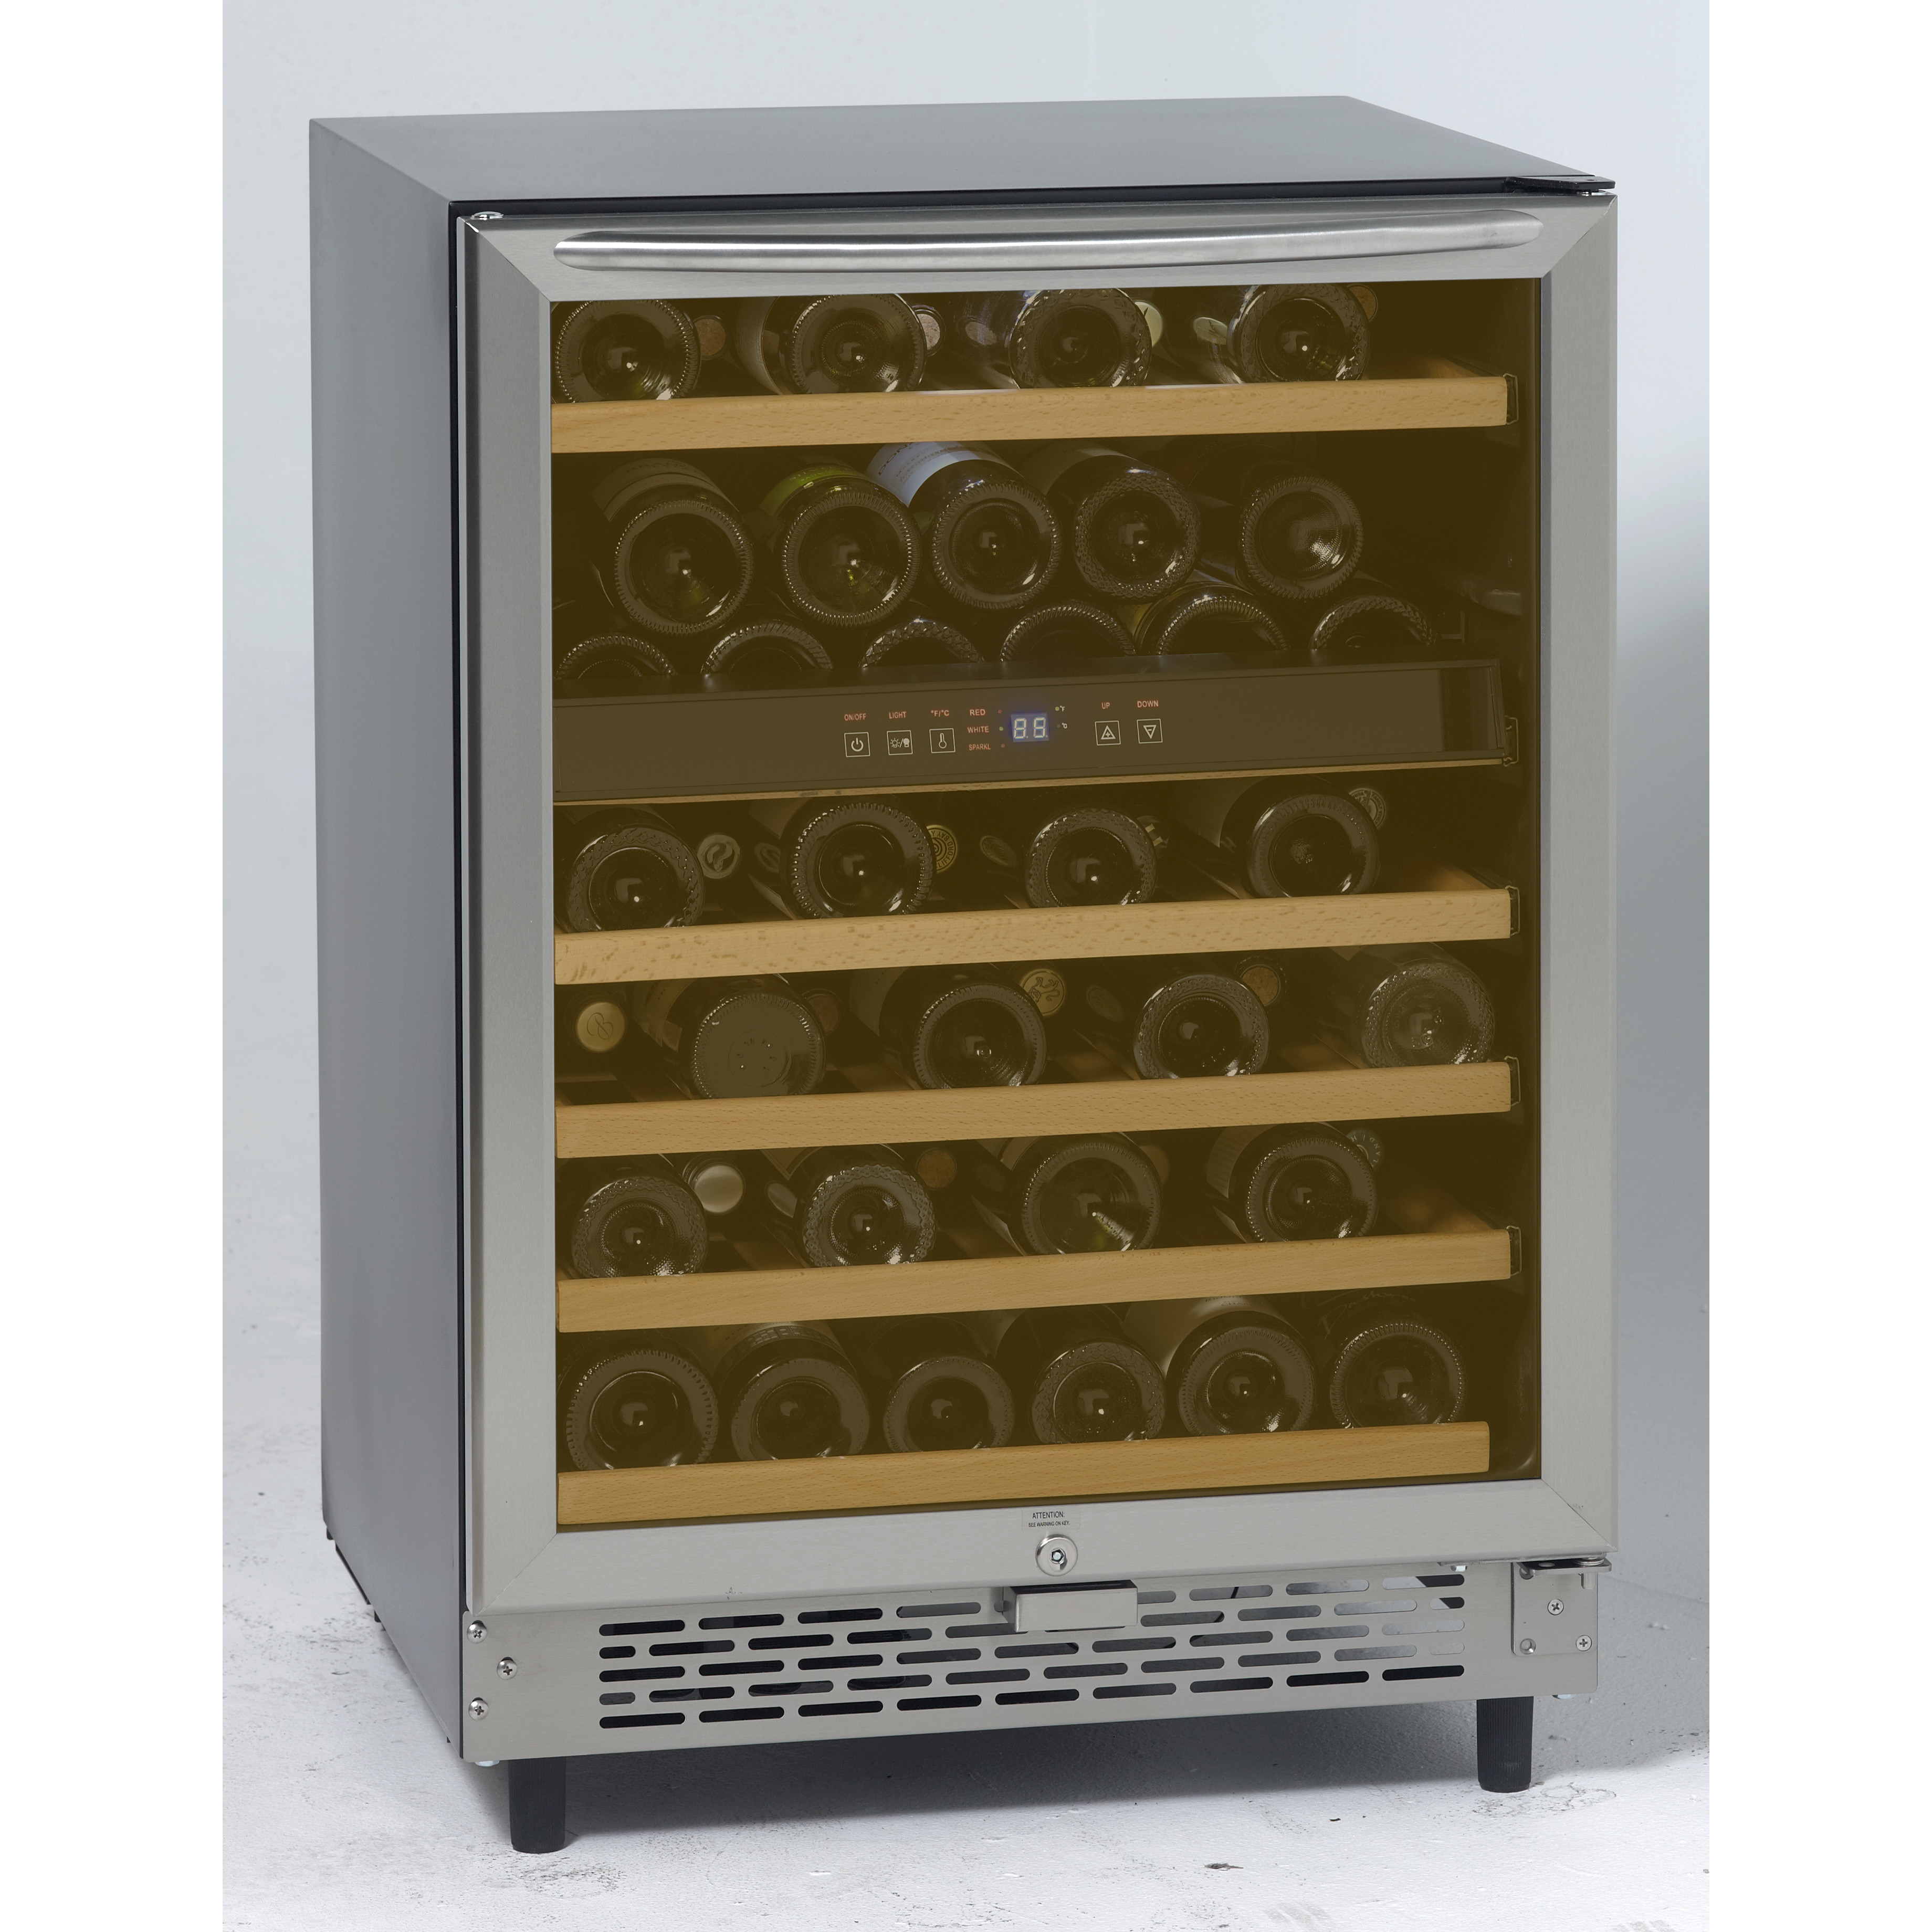 avanti avanti avanti wine cooler repair